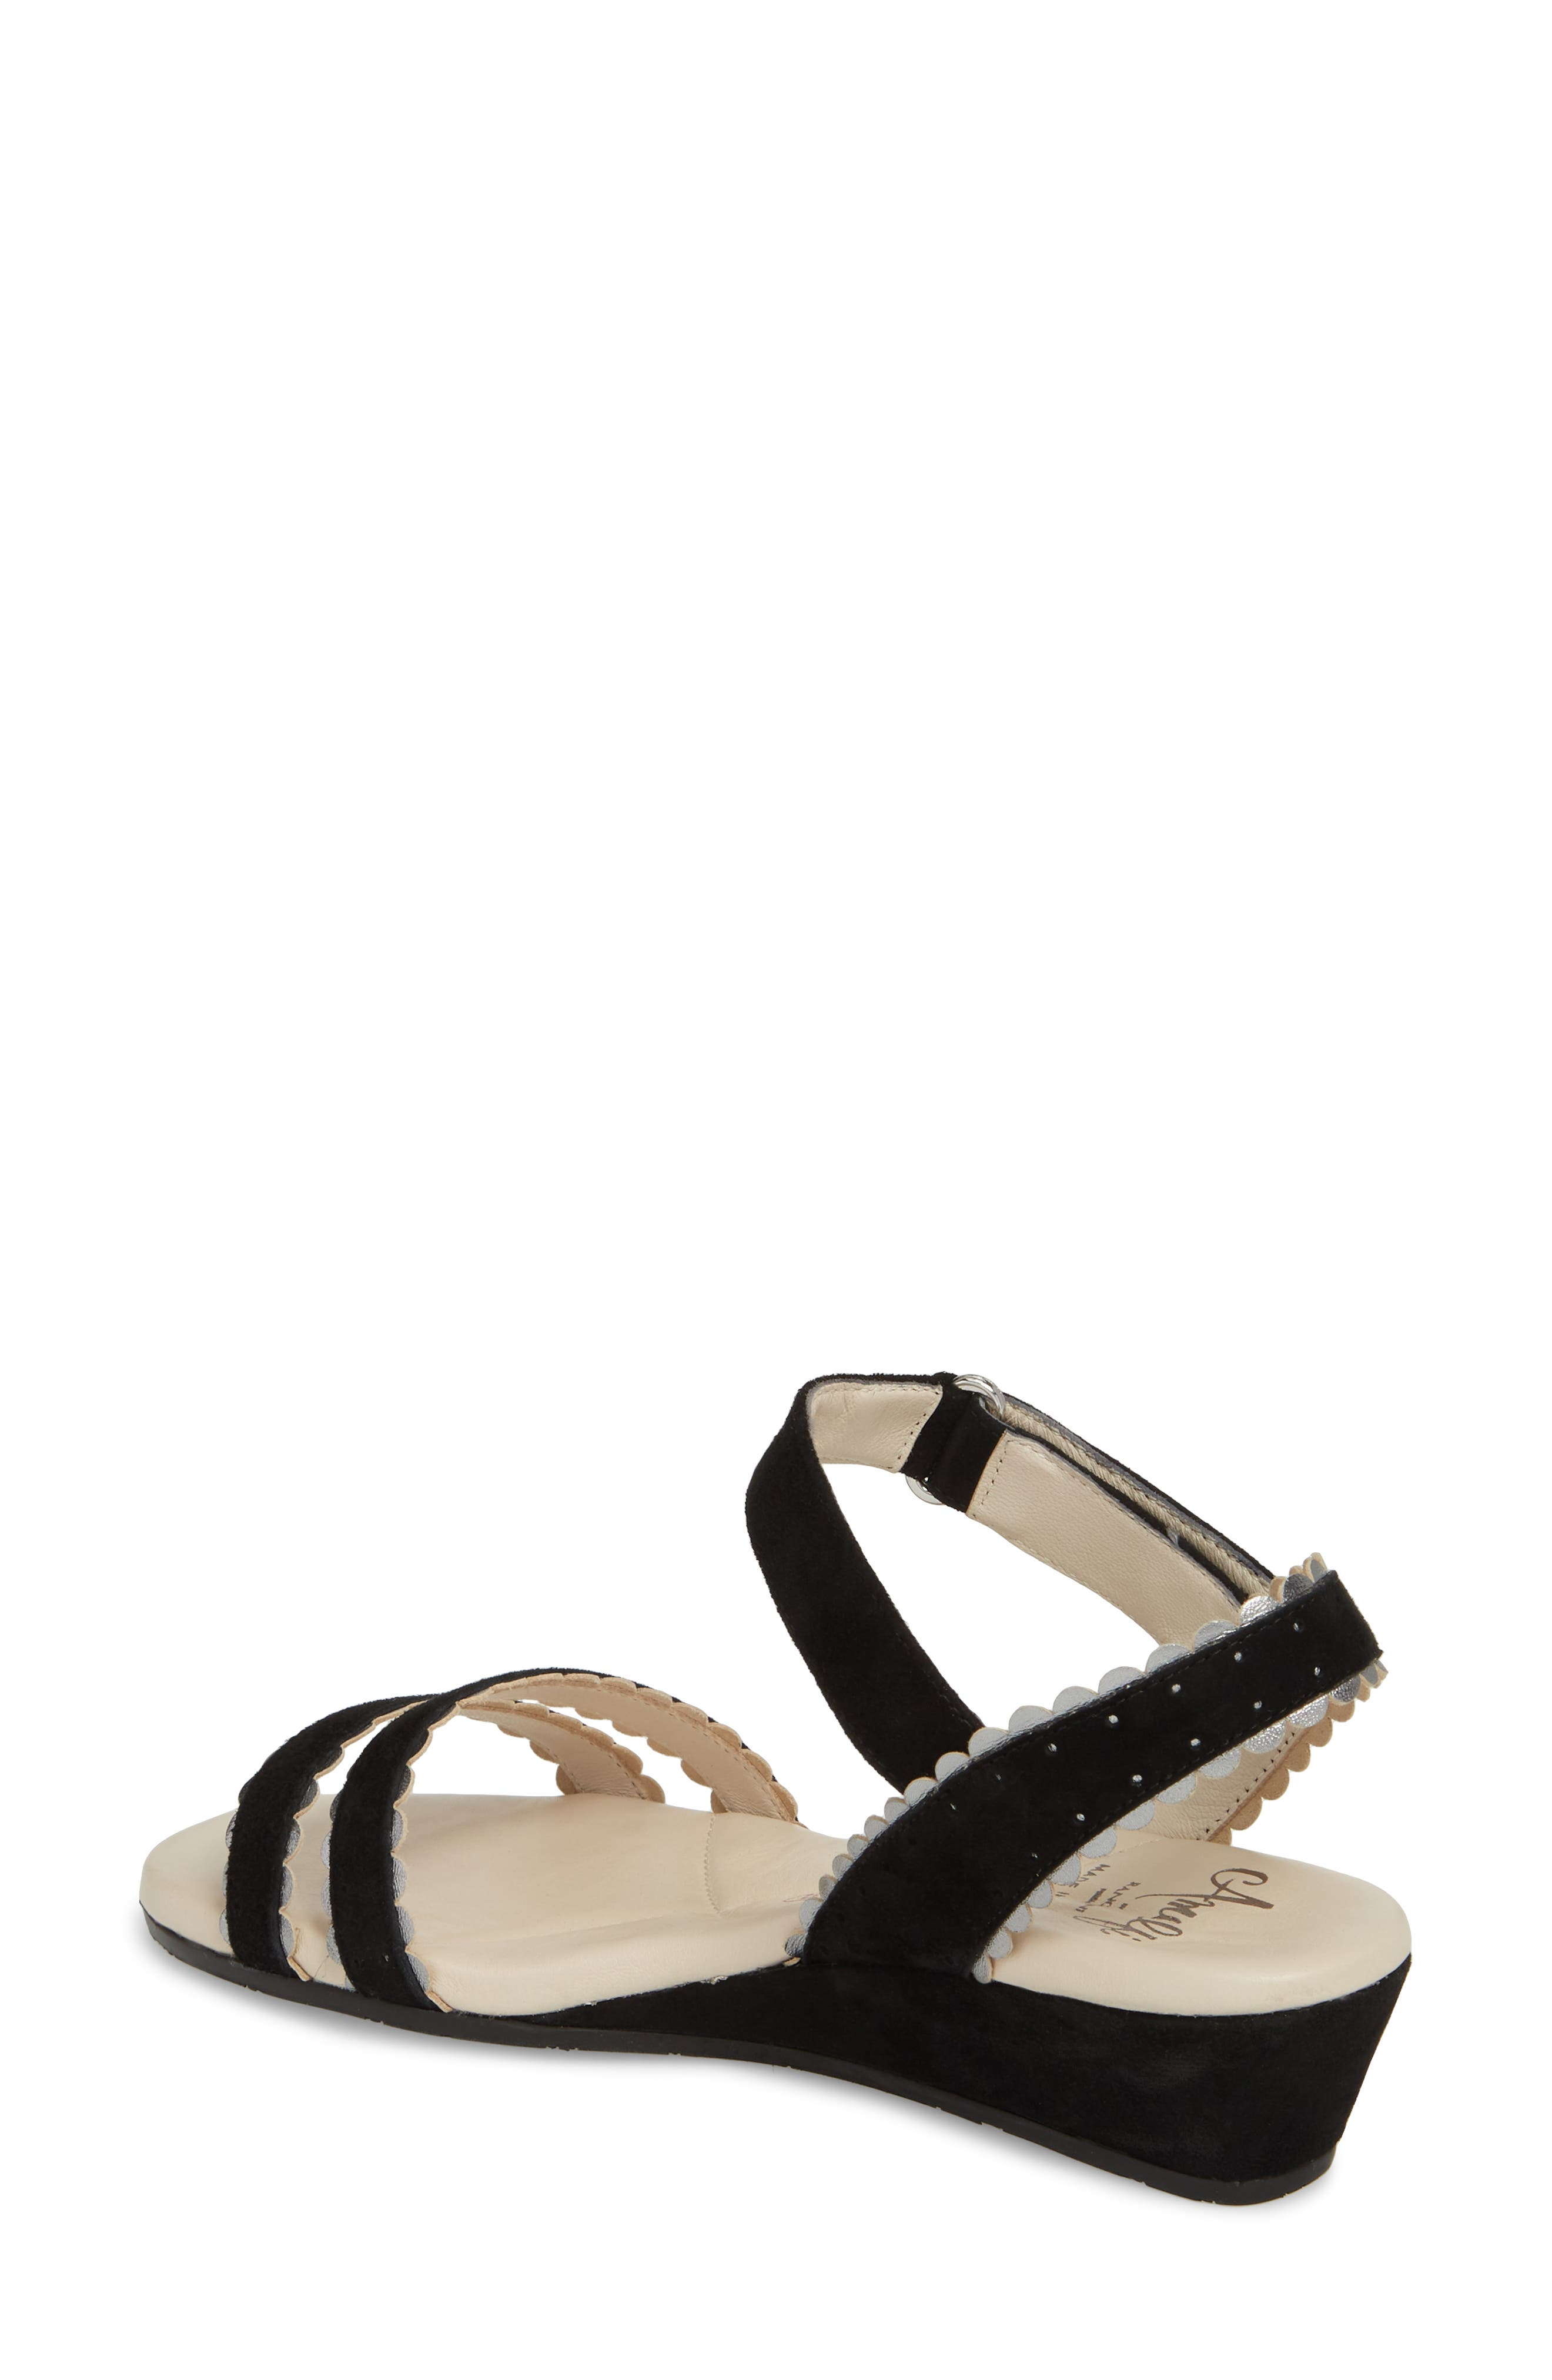 Messina Wedge Sandal,                             Alternate thumbnail 2, color,                             BLACK SUEDE